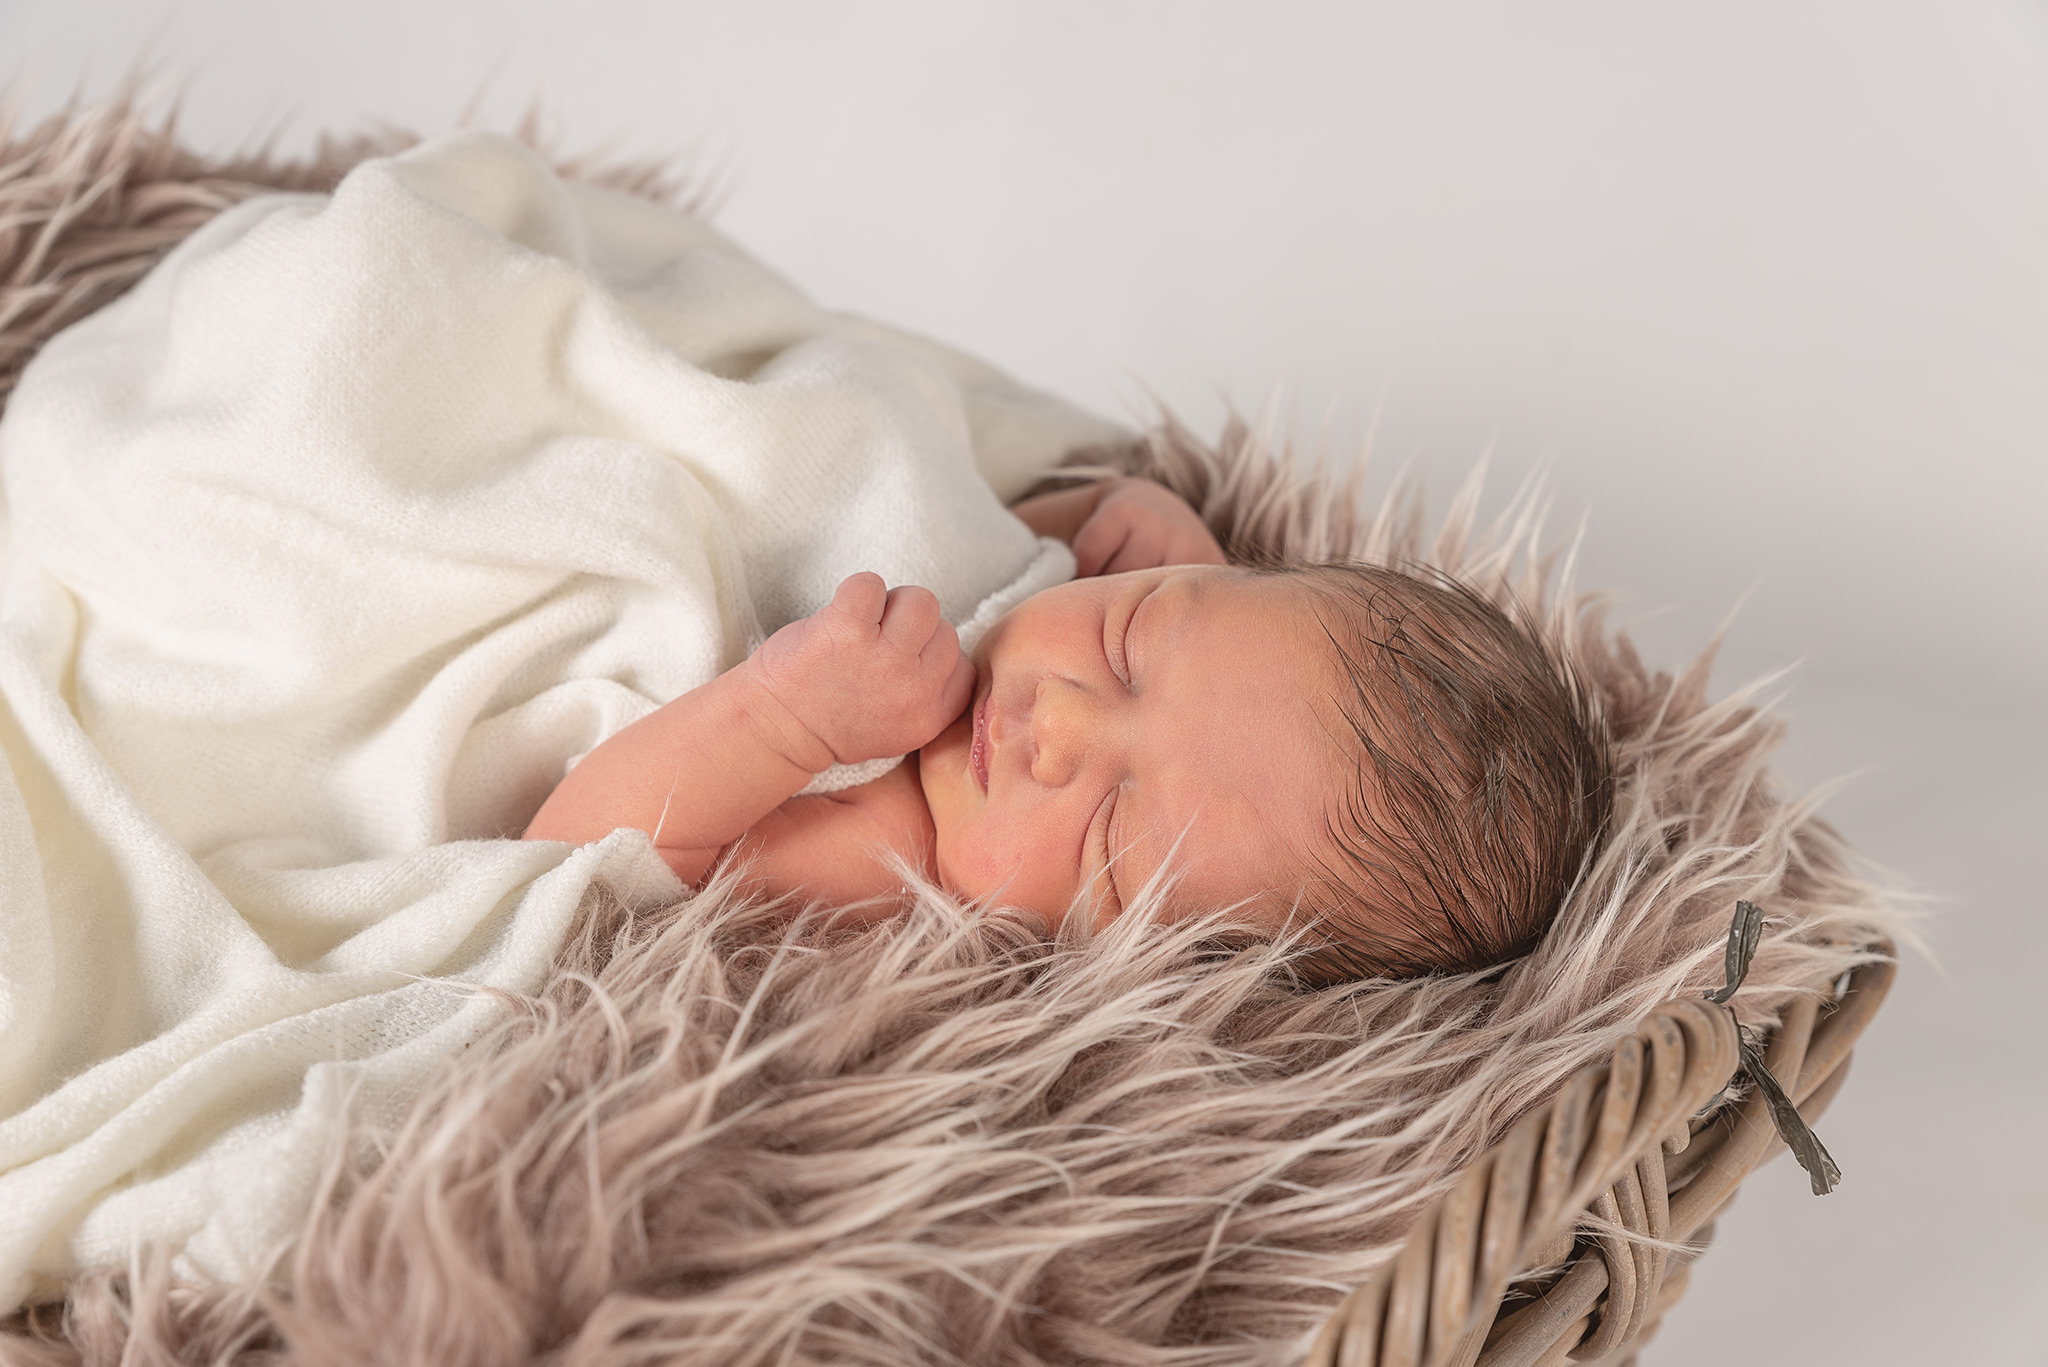 close up image of Newborn baby laying on his back with his fist on chin. Baby is laying in a wicker basket with a brown fury blanket and a white fabric covering his body